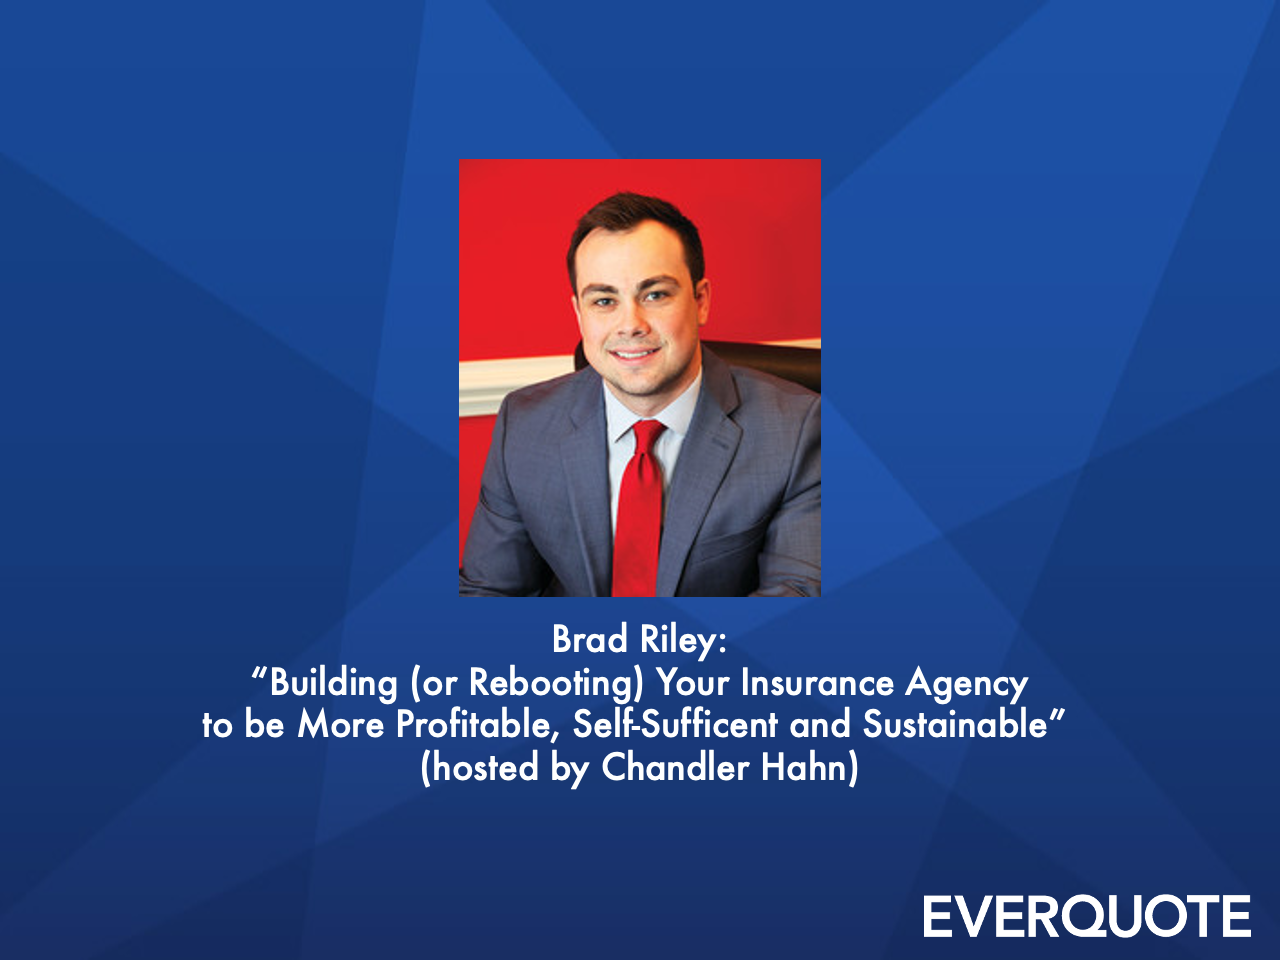 Building (or Rebooting) Your Insurance Agency to be More Profitable, Self-Sufficent and Sustainable with Brad Riley